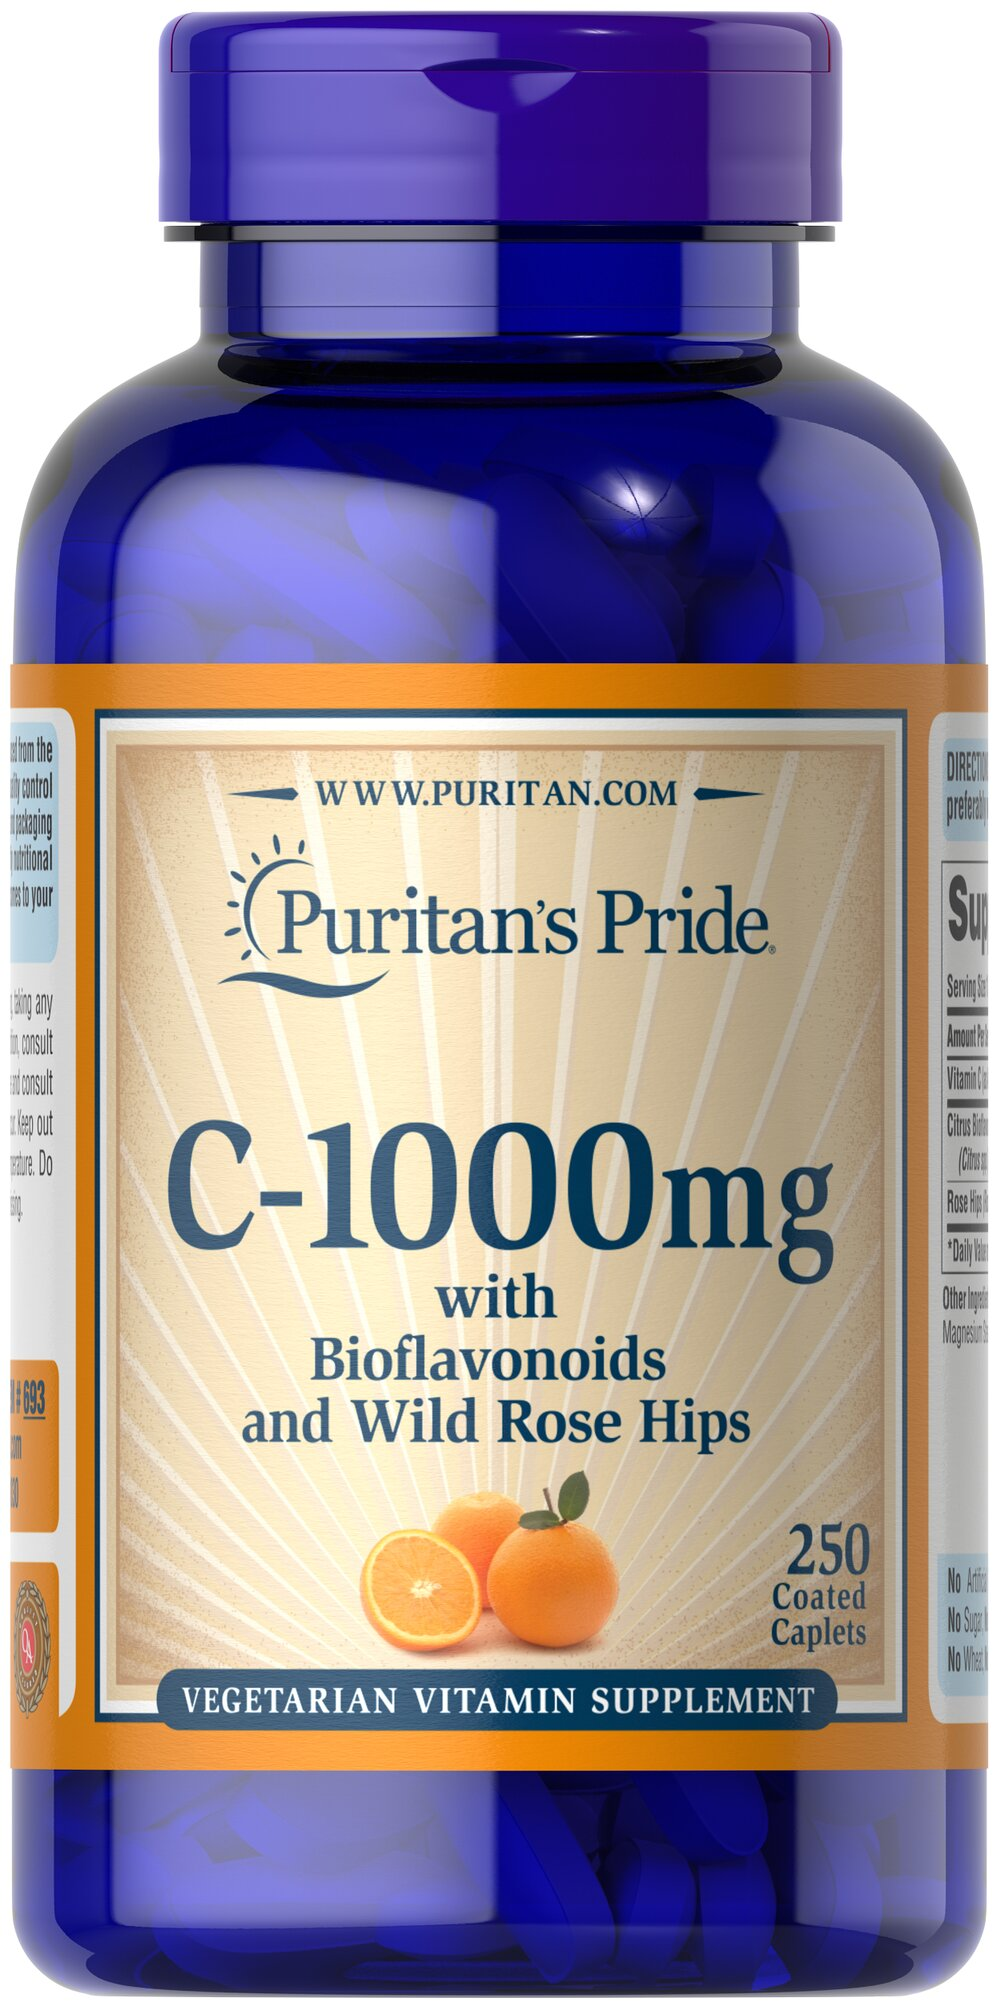 Vitamin C-1000 mg with Bioflavonoids & Rose Hips  250 Caplets 1000 mg $24.99